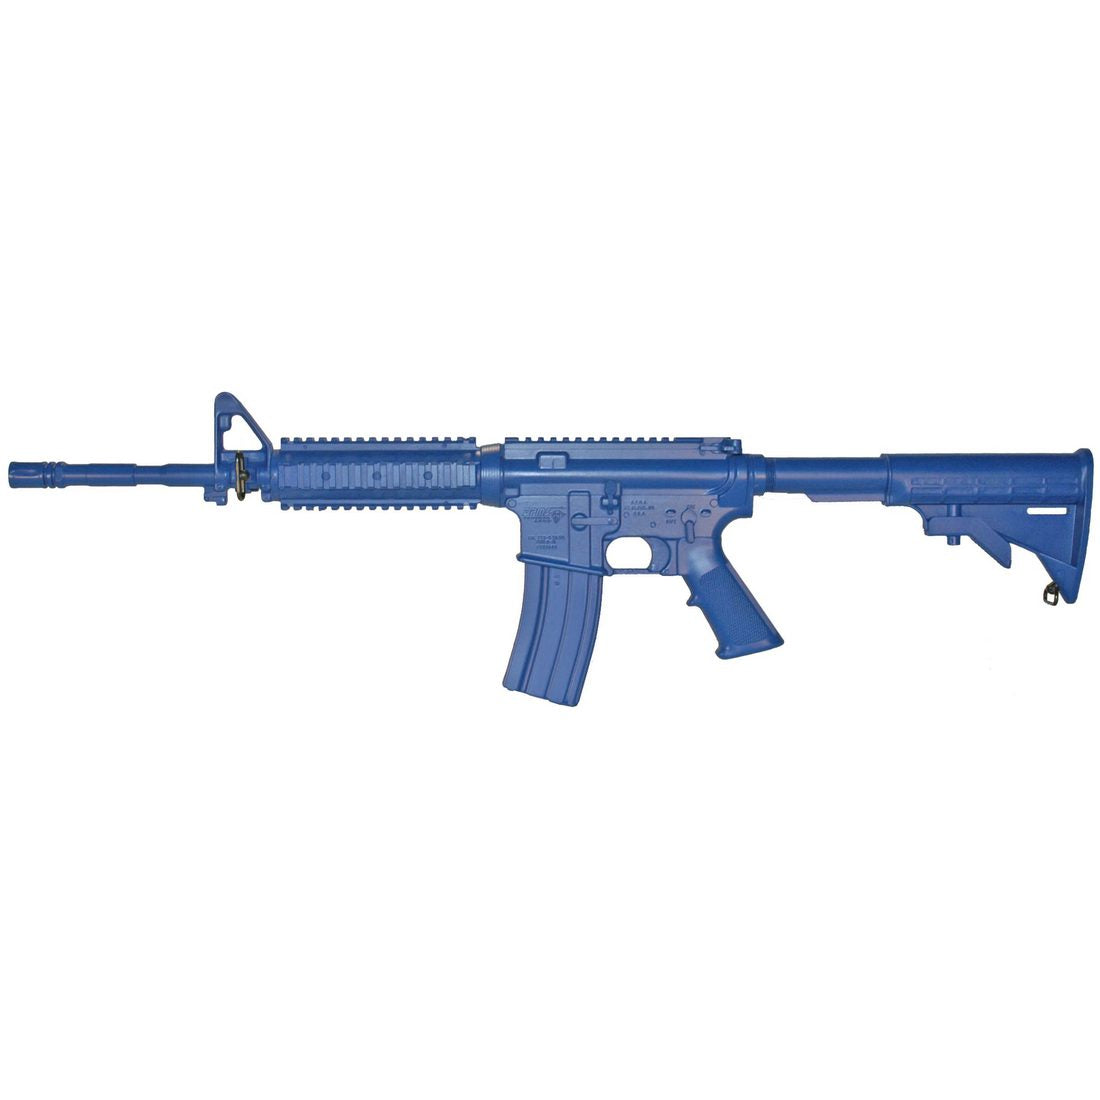 "Blueguns FSM4FTR14 M4 Flat Top Open Stock, Fwd Rail, 14"" Barrel"